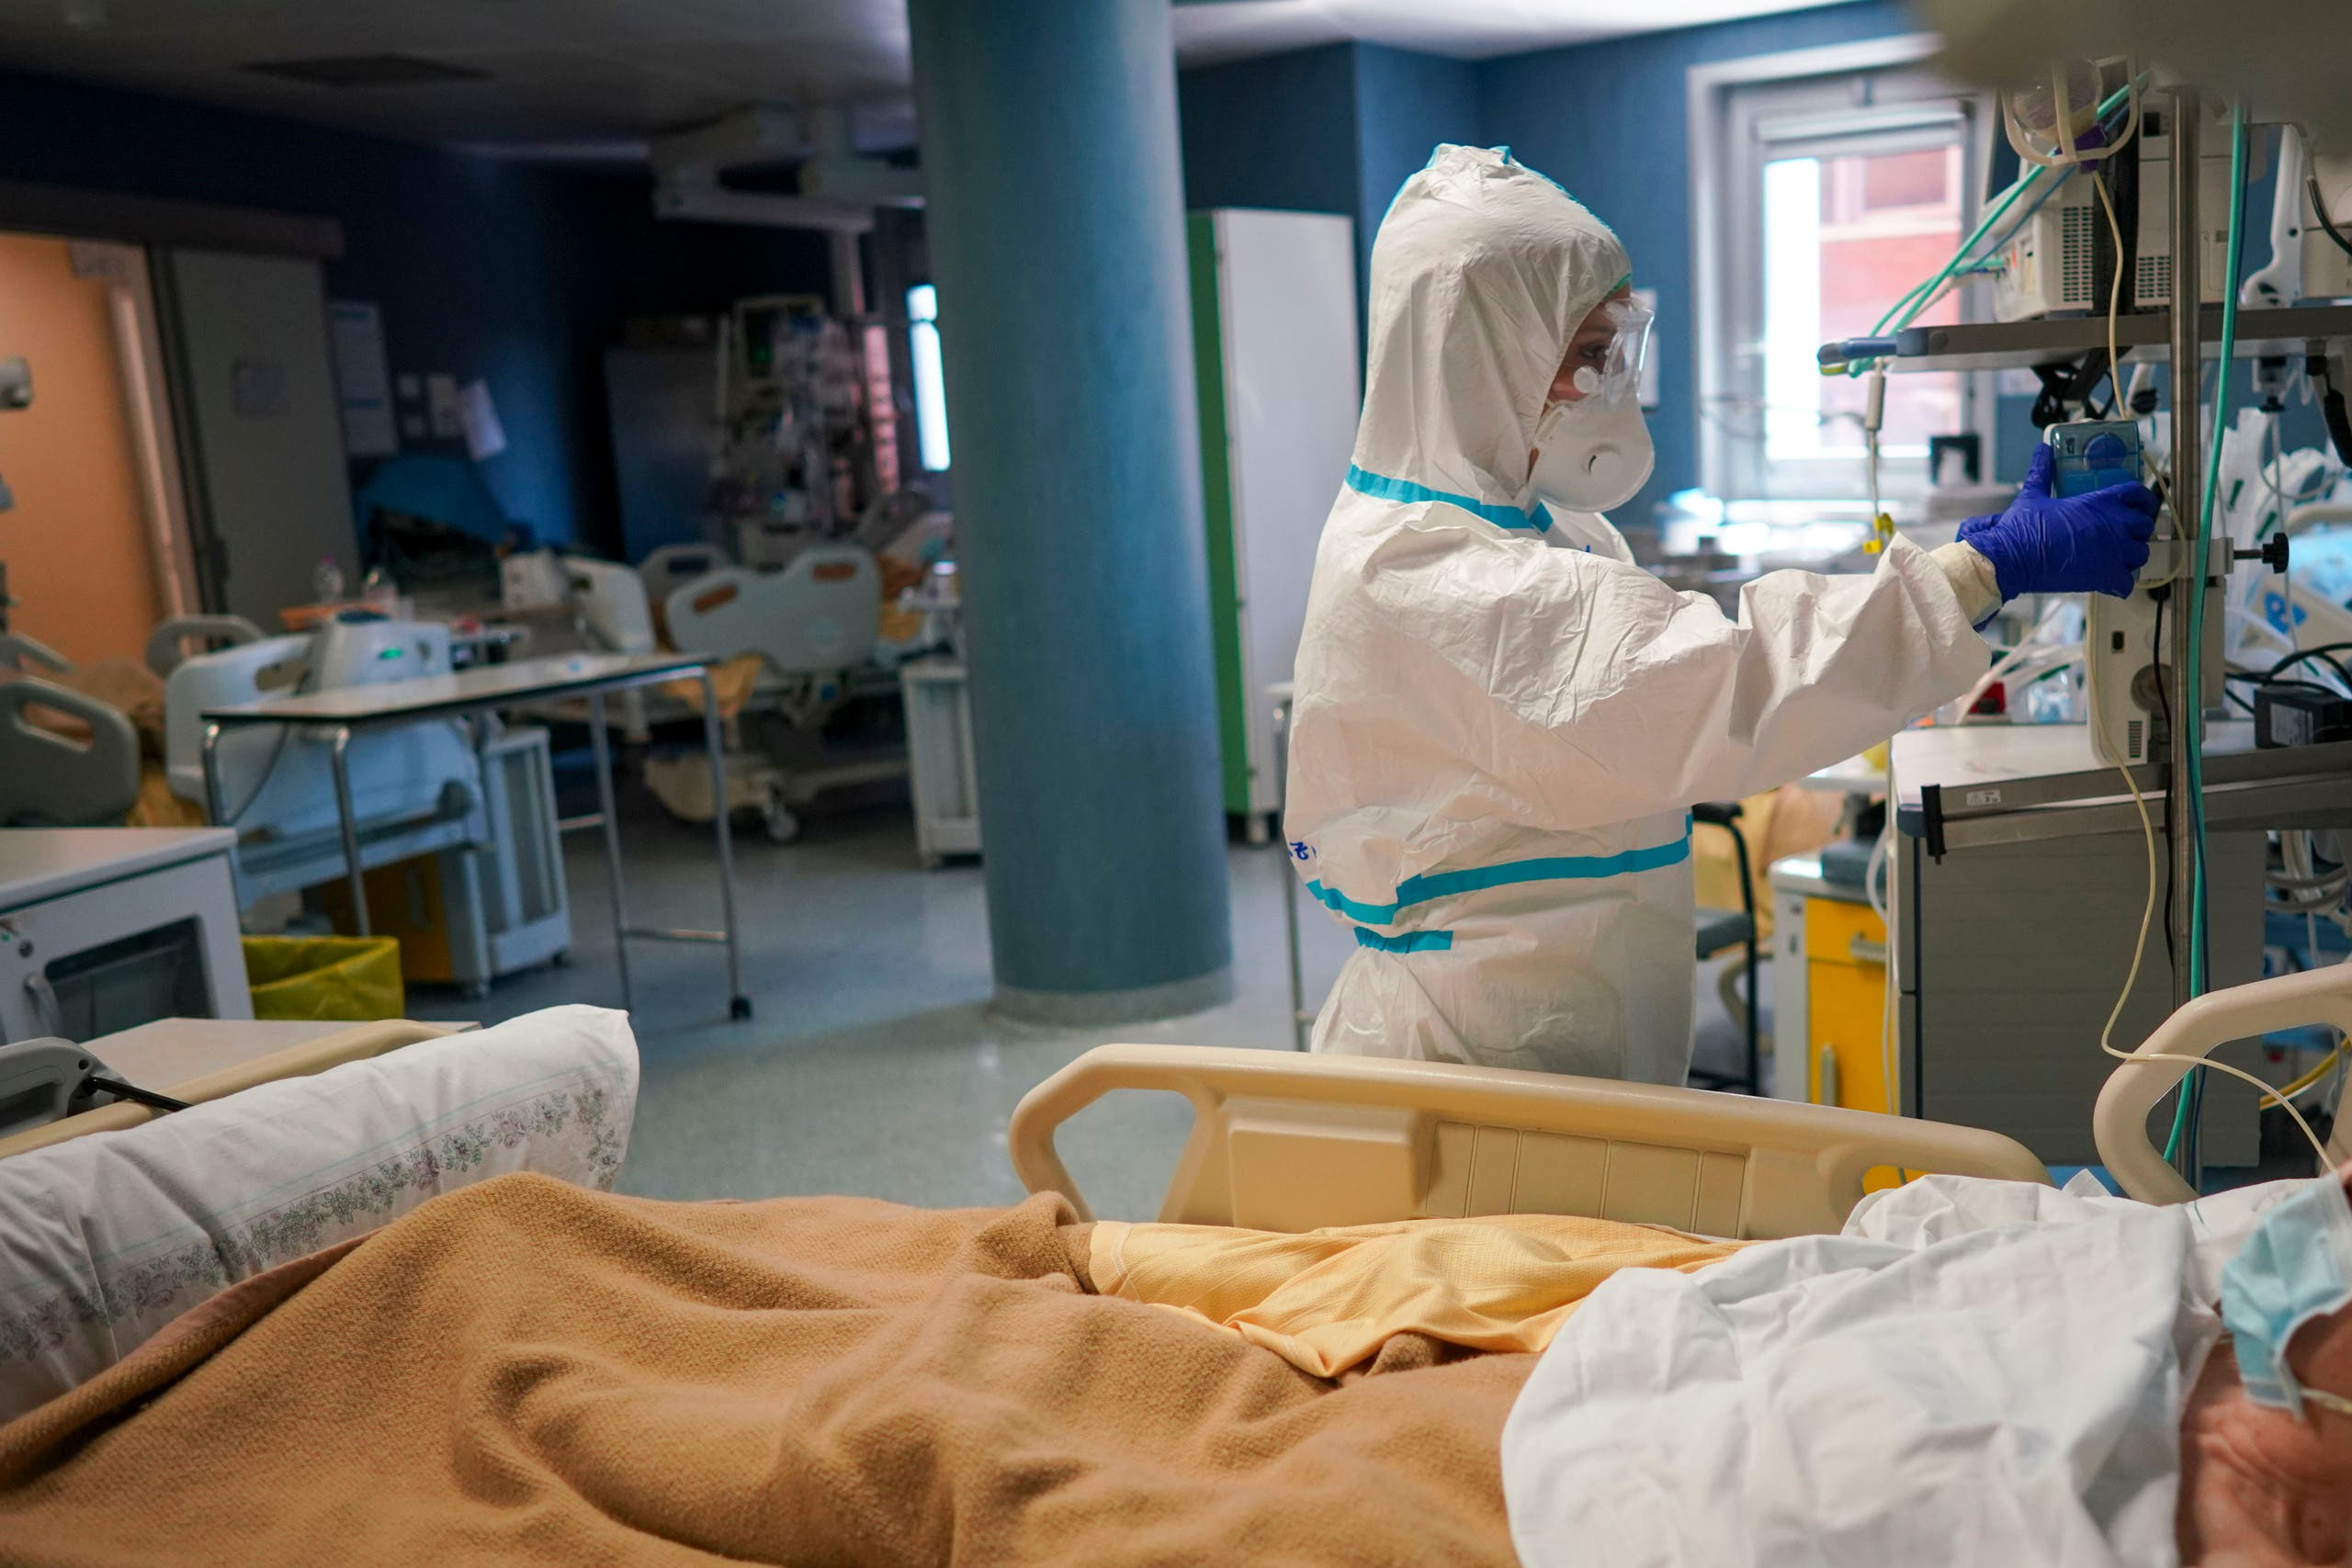 A medical staffer tends to a patient In the ICU unit of Rome's San Filippo Neri Hospital's Covid department on April 9, 2020. (AP)